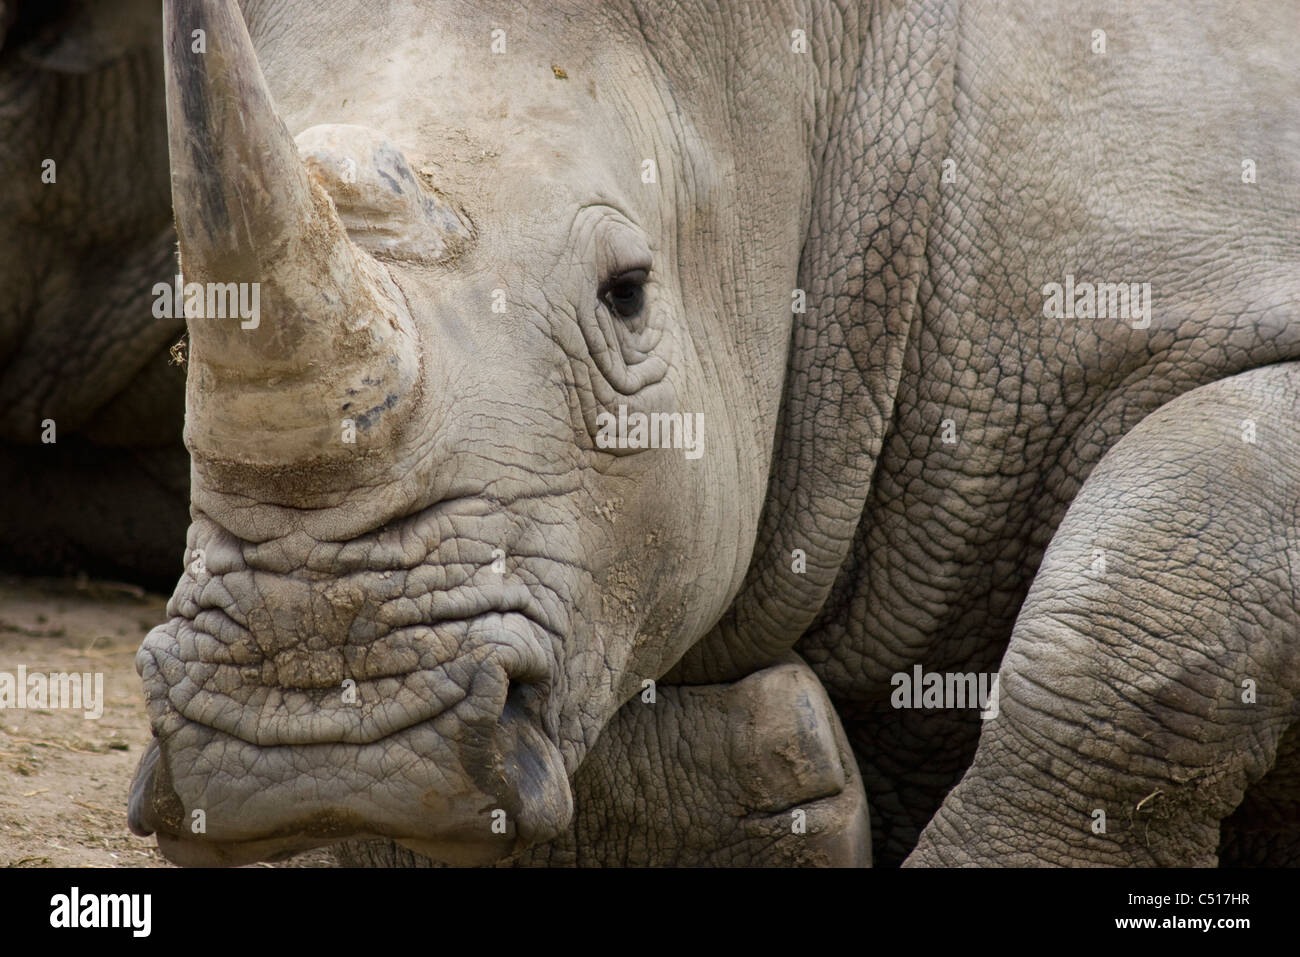 Rhinoceros - Stock Image